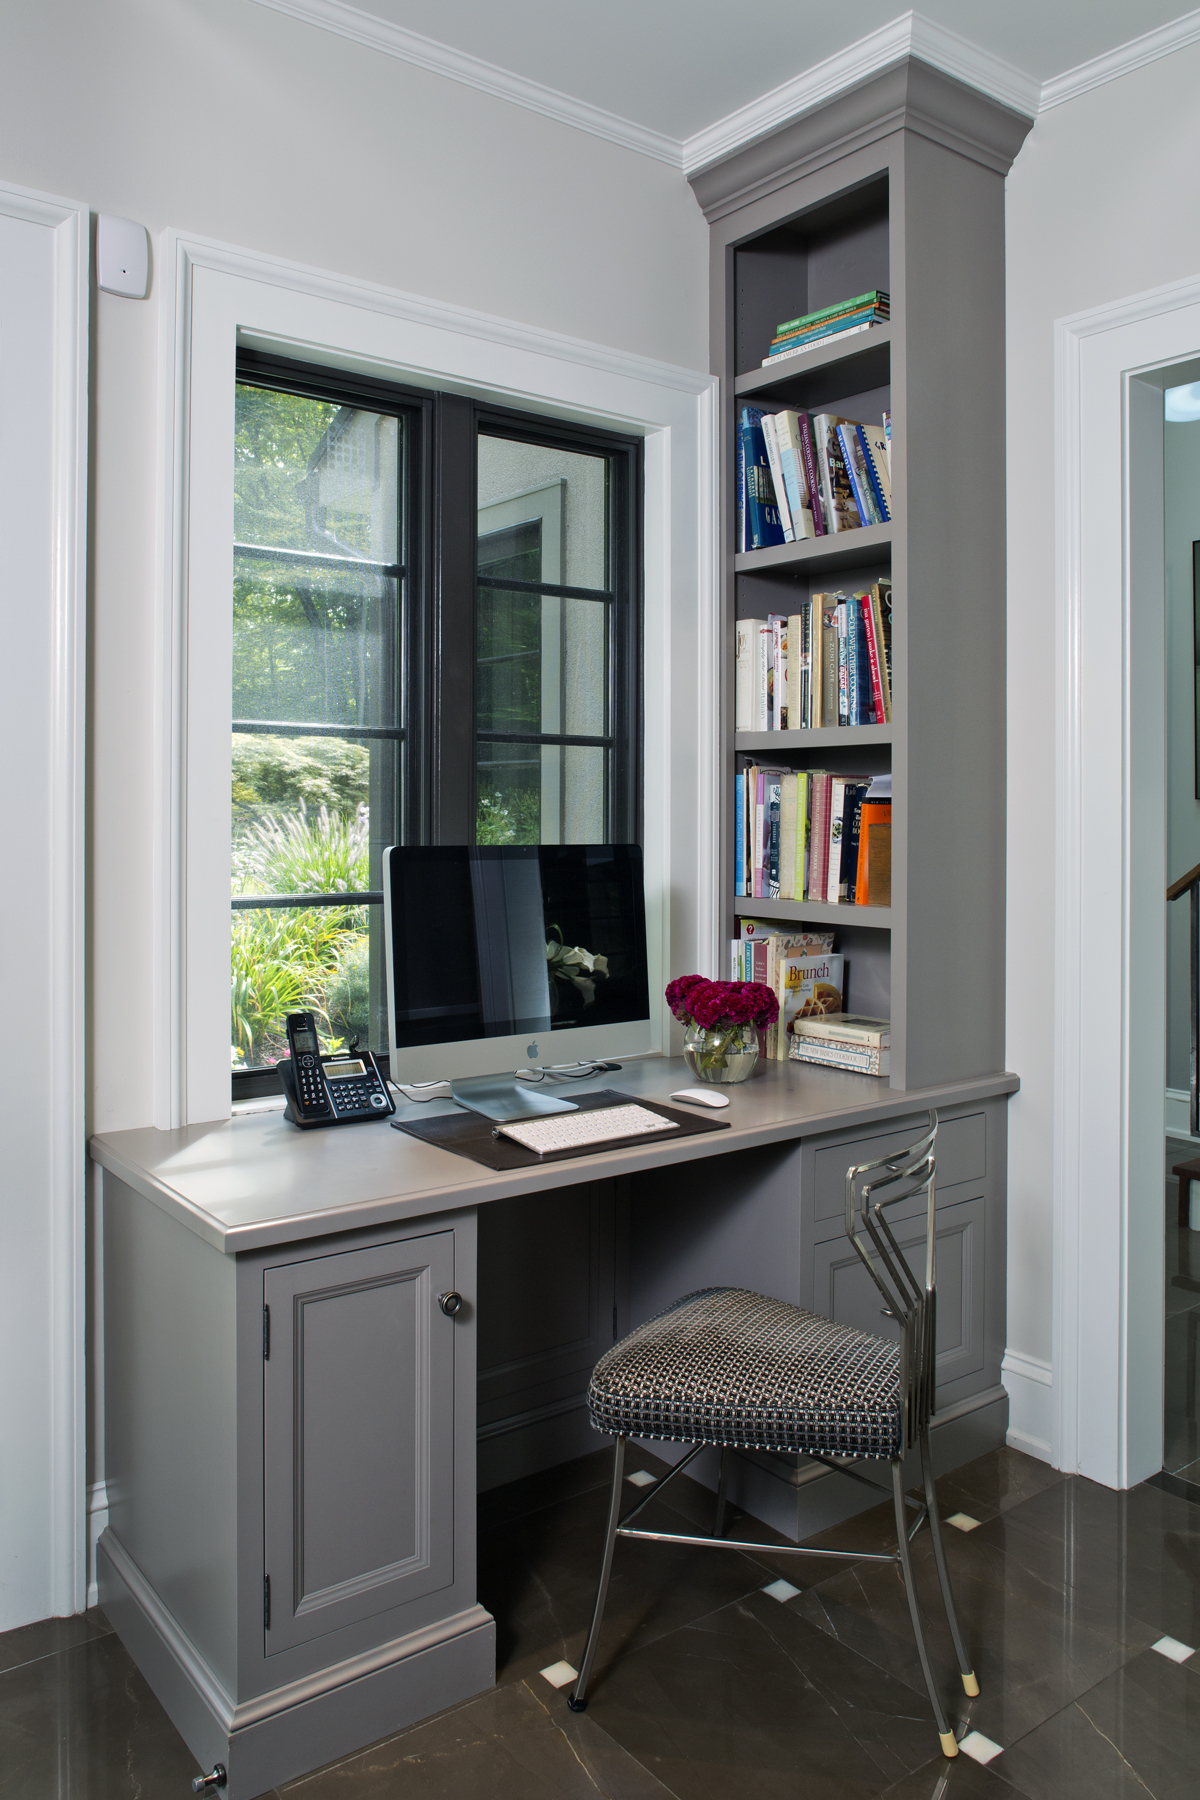 Home office features custom light grey painted Bilotta Cabinetry desk and custom built-in shelving. Desk is situated under a white-framed window with black mullions. Design by Paula Greer, CKD, of Bilotta Kitchens.